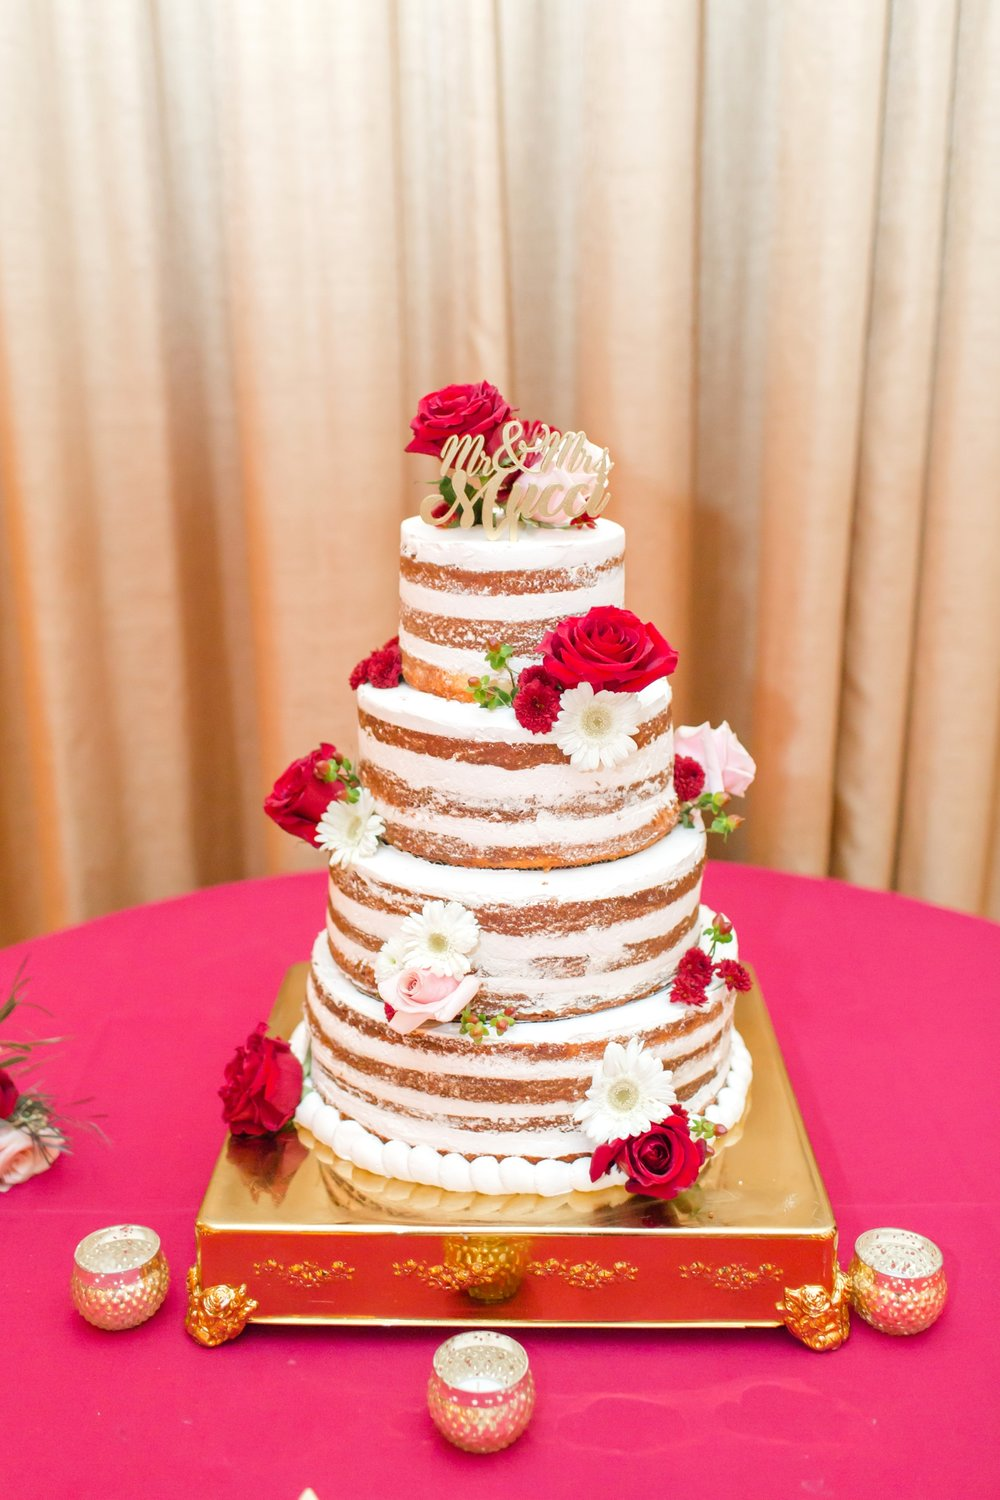 This naked cake created by   Blue Dolfin Sweets   is amazing!